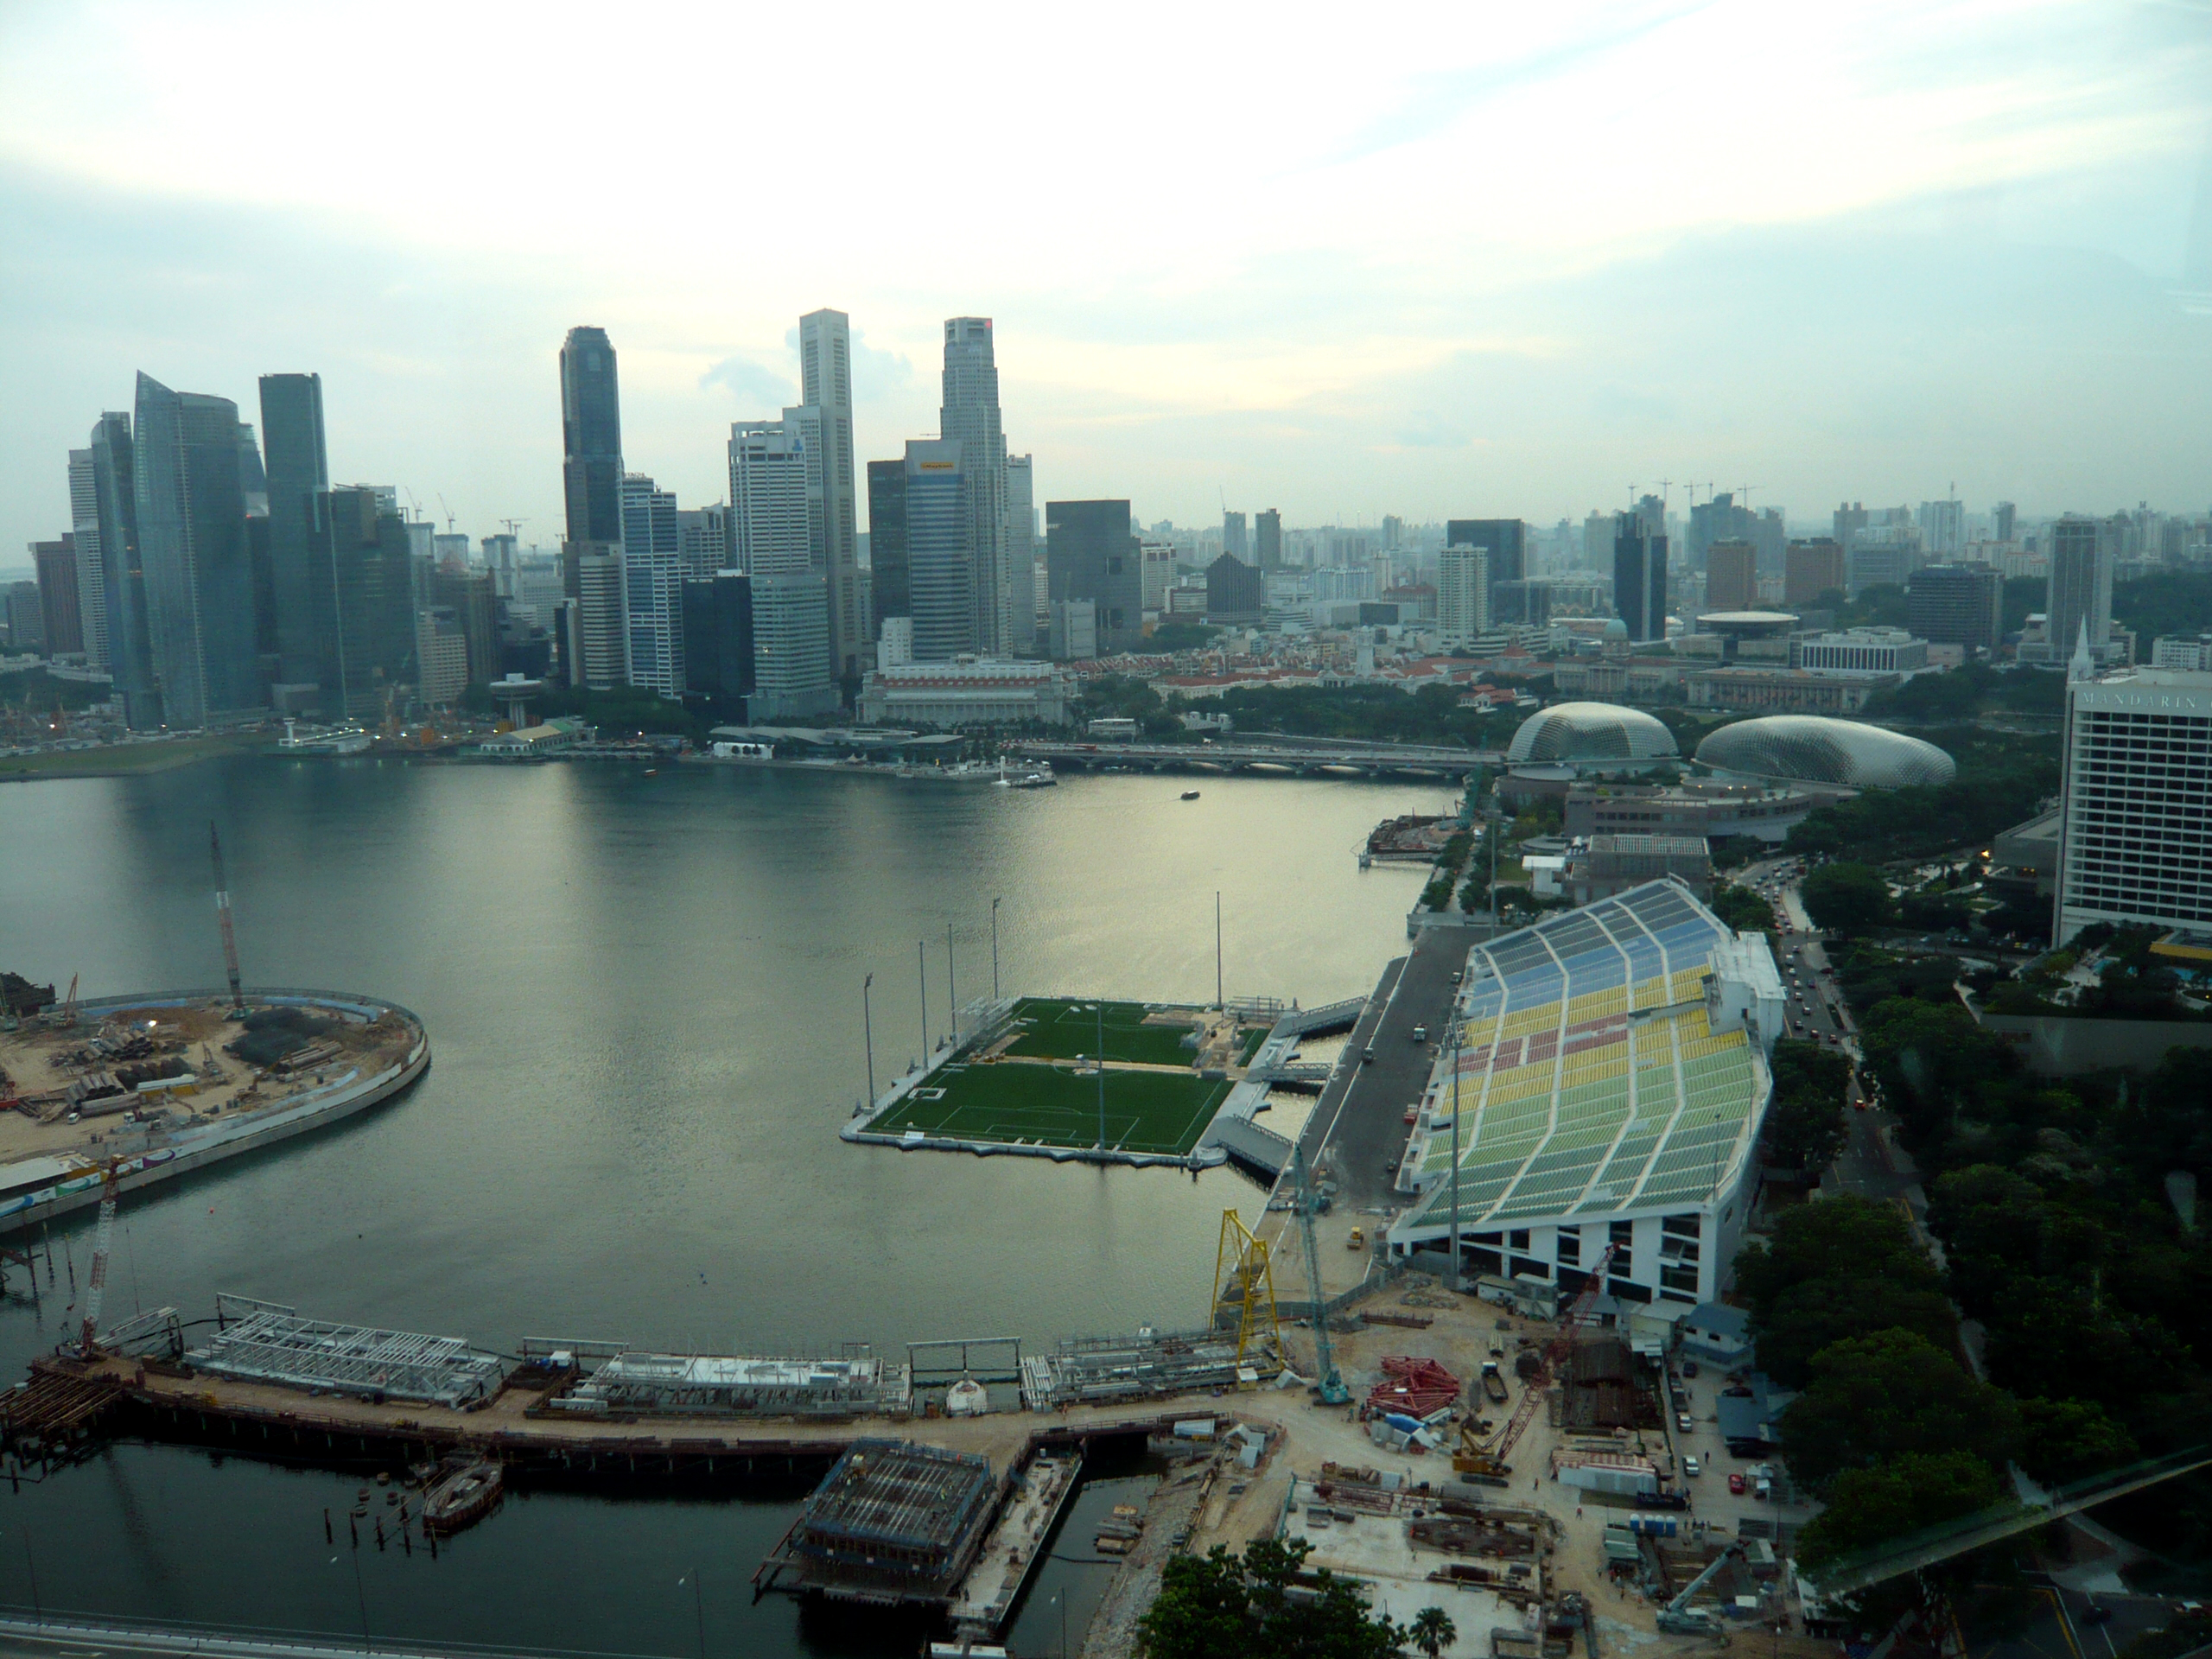 File:Singapore flyer view1.JPG - Wikipedia